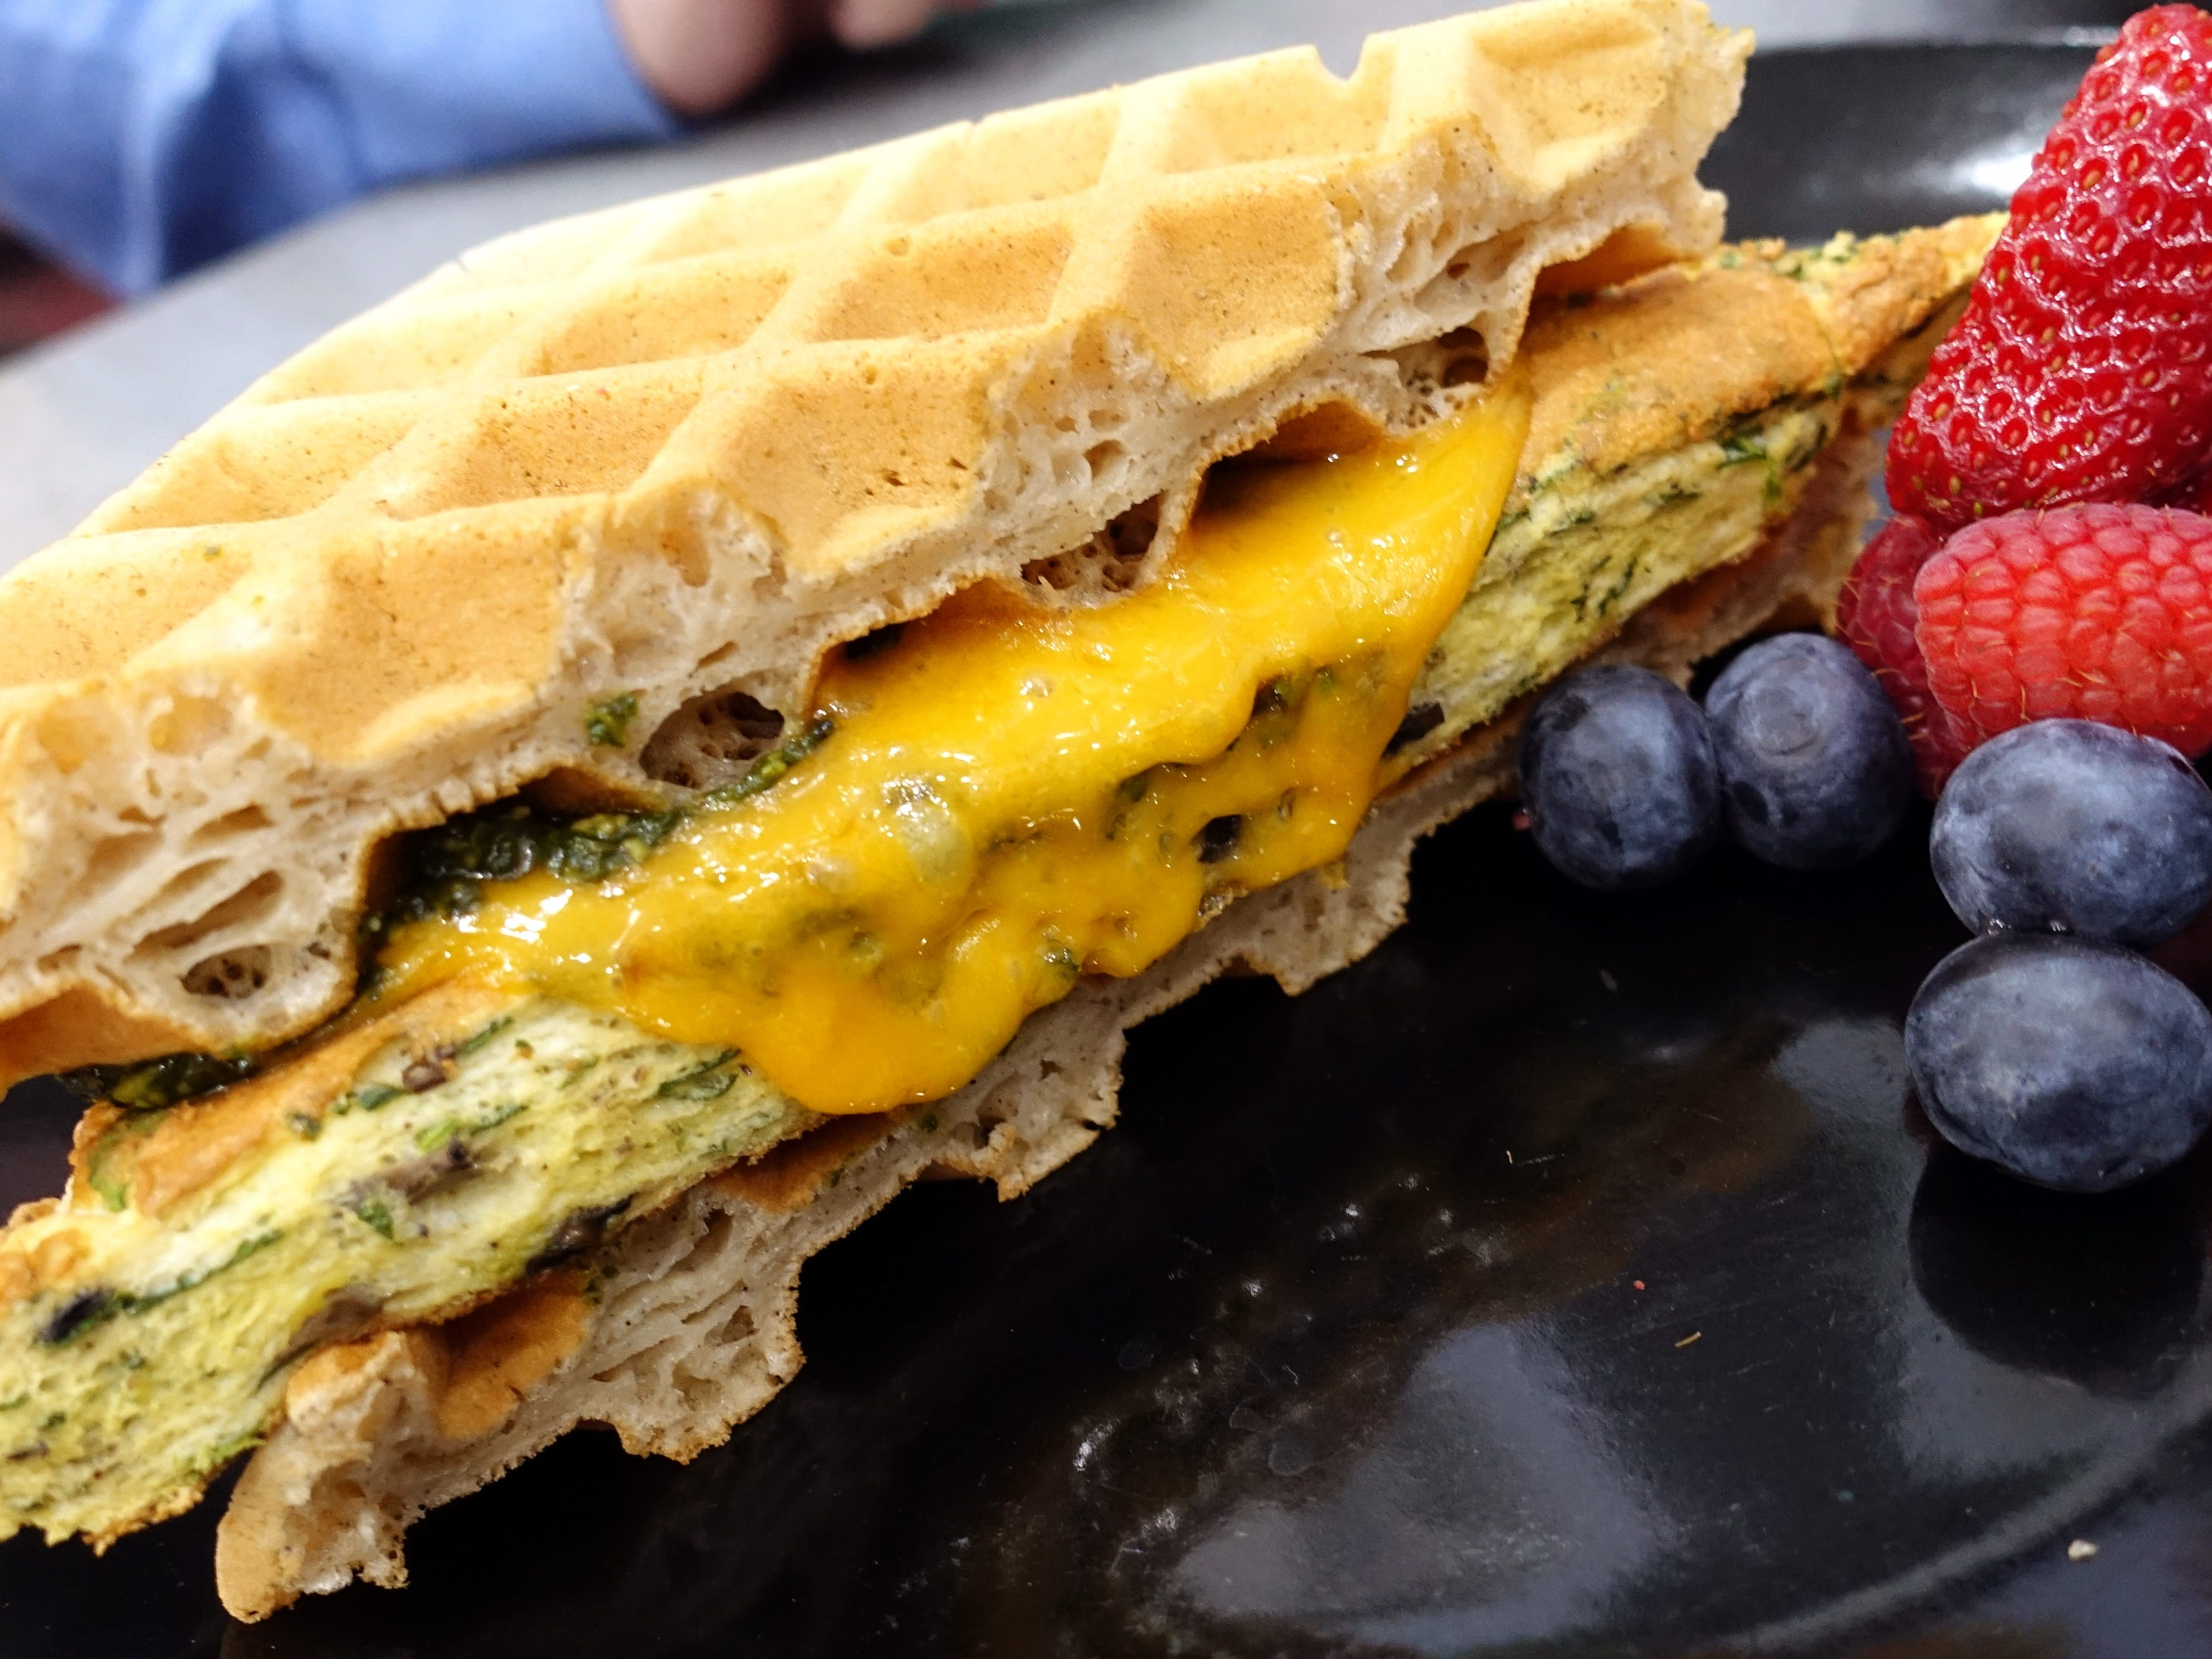 Spin & Shrooms breakfast sandwich with spinach and mushroom souffle baked egg, cheddar cheese and pesto on waffles at Sweetest Season Artisan Eatery in Tempe.